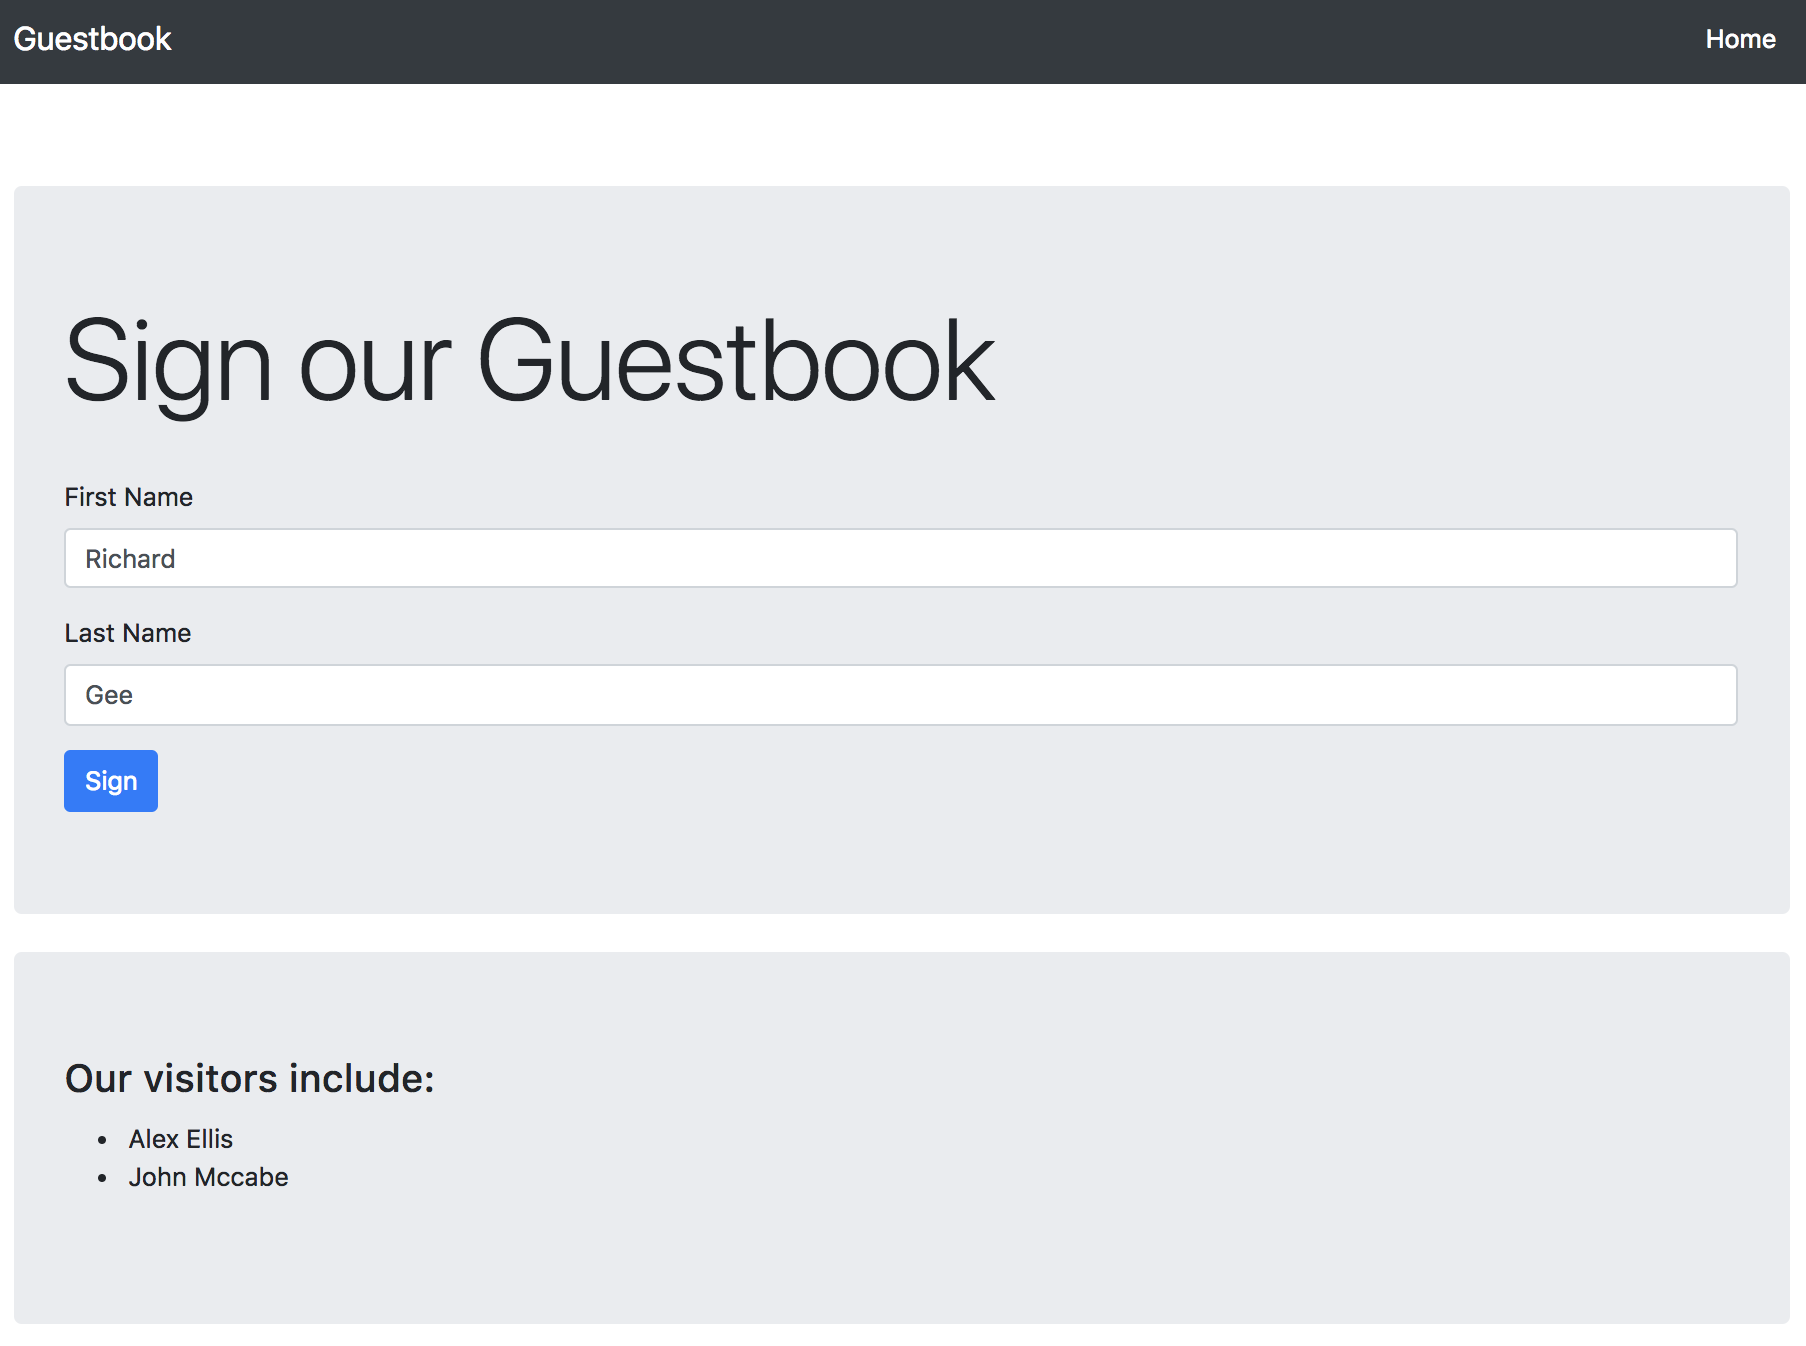 Guestbook screenshot